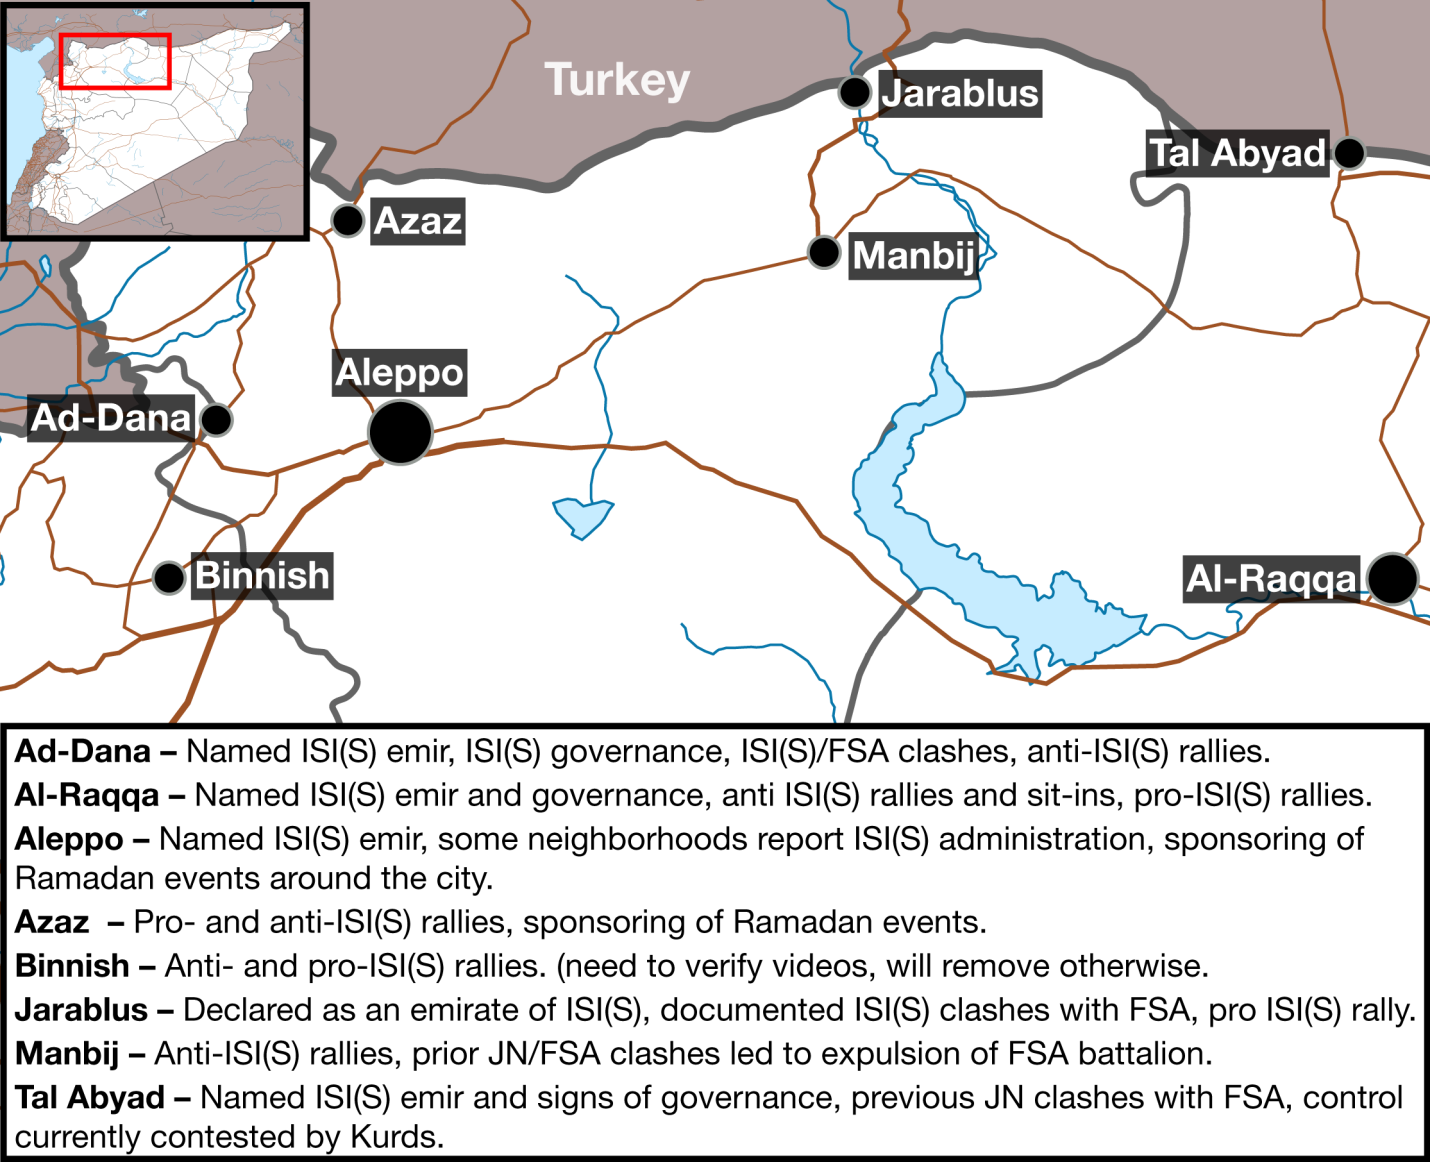 Map of Areas with Evidence of ISI(S) Control